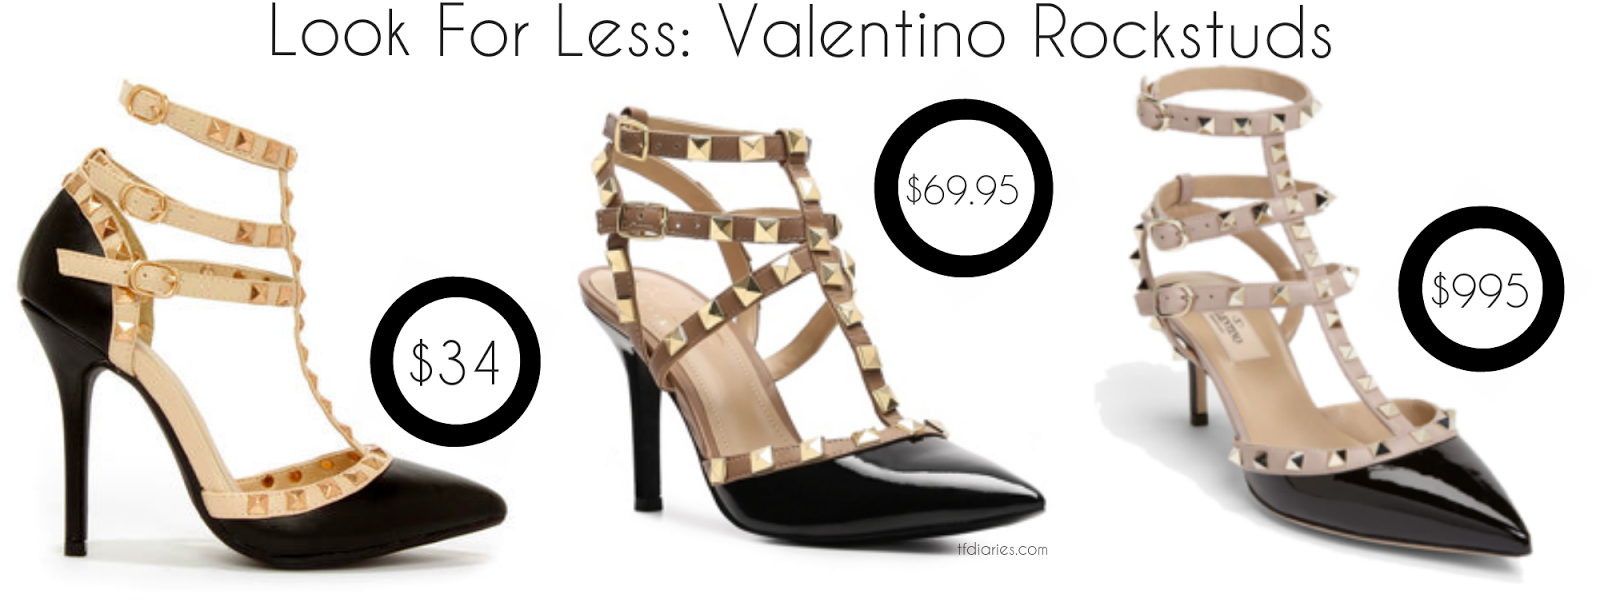 rockstud inspired heels, rockstuds under $50, designer look for less, designer inspired heels under $50